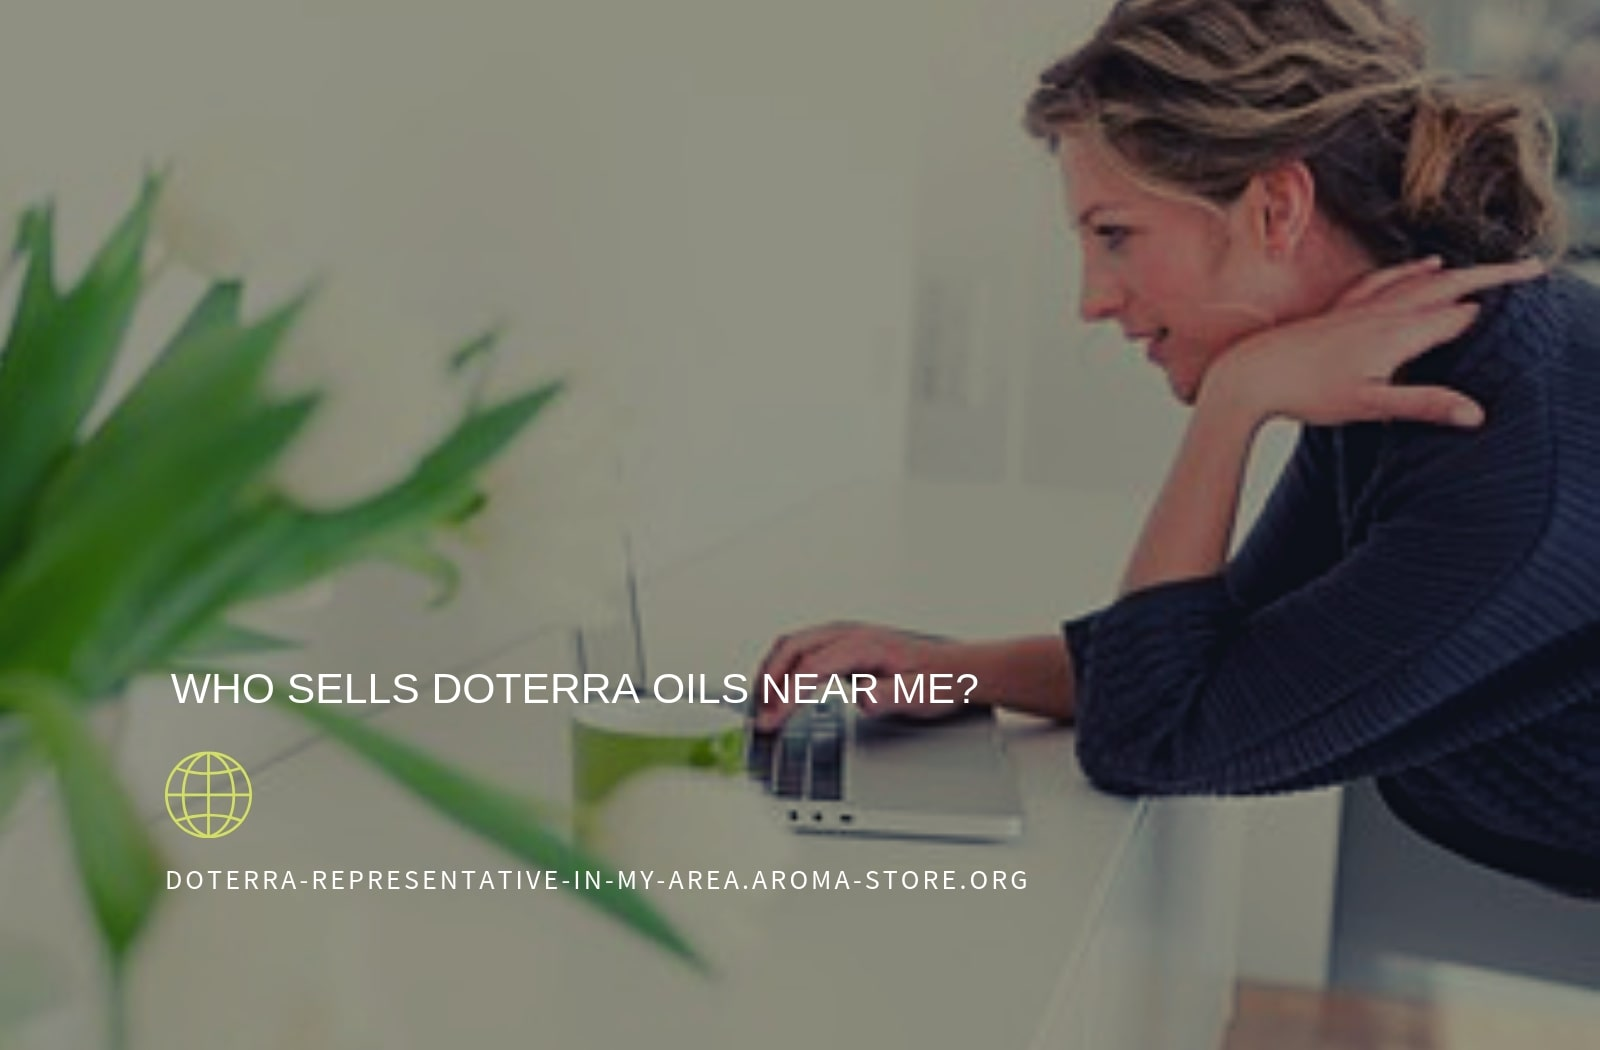 Who sells doTERRA oils near me